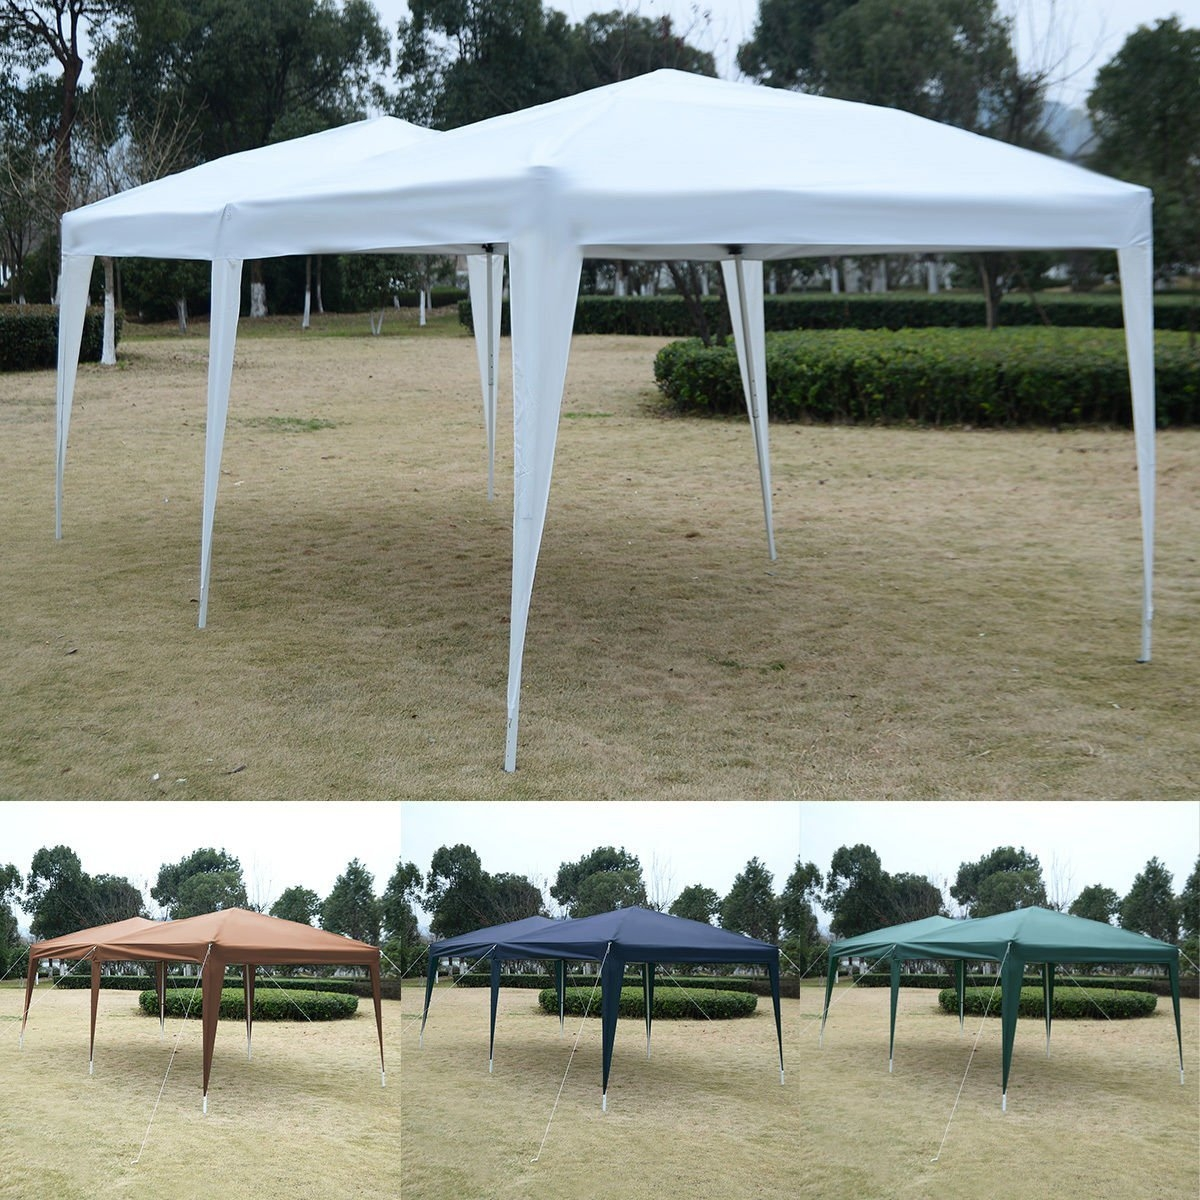 New MTN-G MTN-G 10'X20' EZ POP UP Gazebo Wedding Party Tent Folding